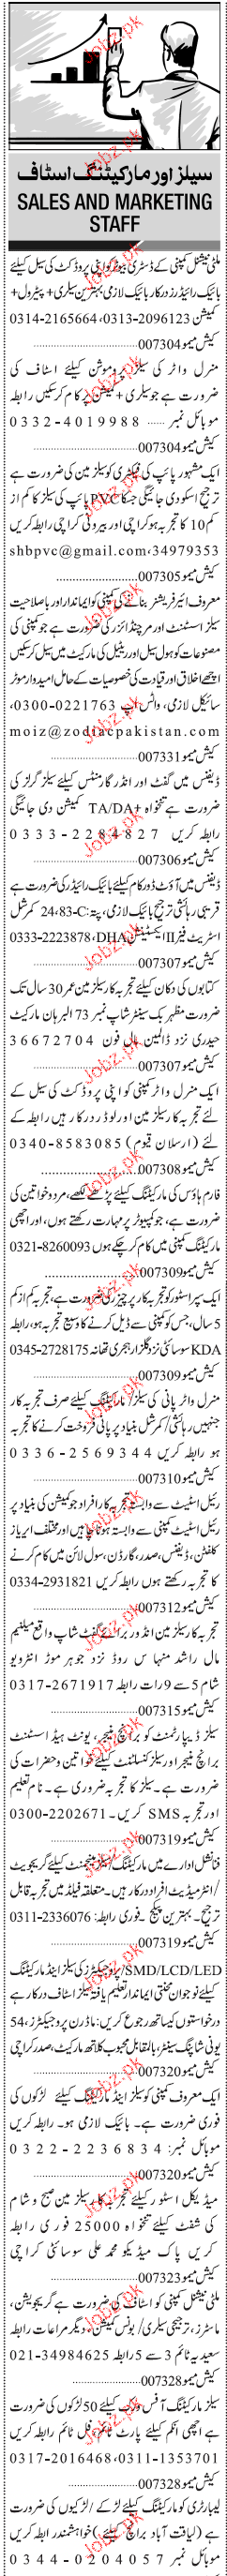 Bike Riders, Sales Promotion Officers, Salesmen Wanted